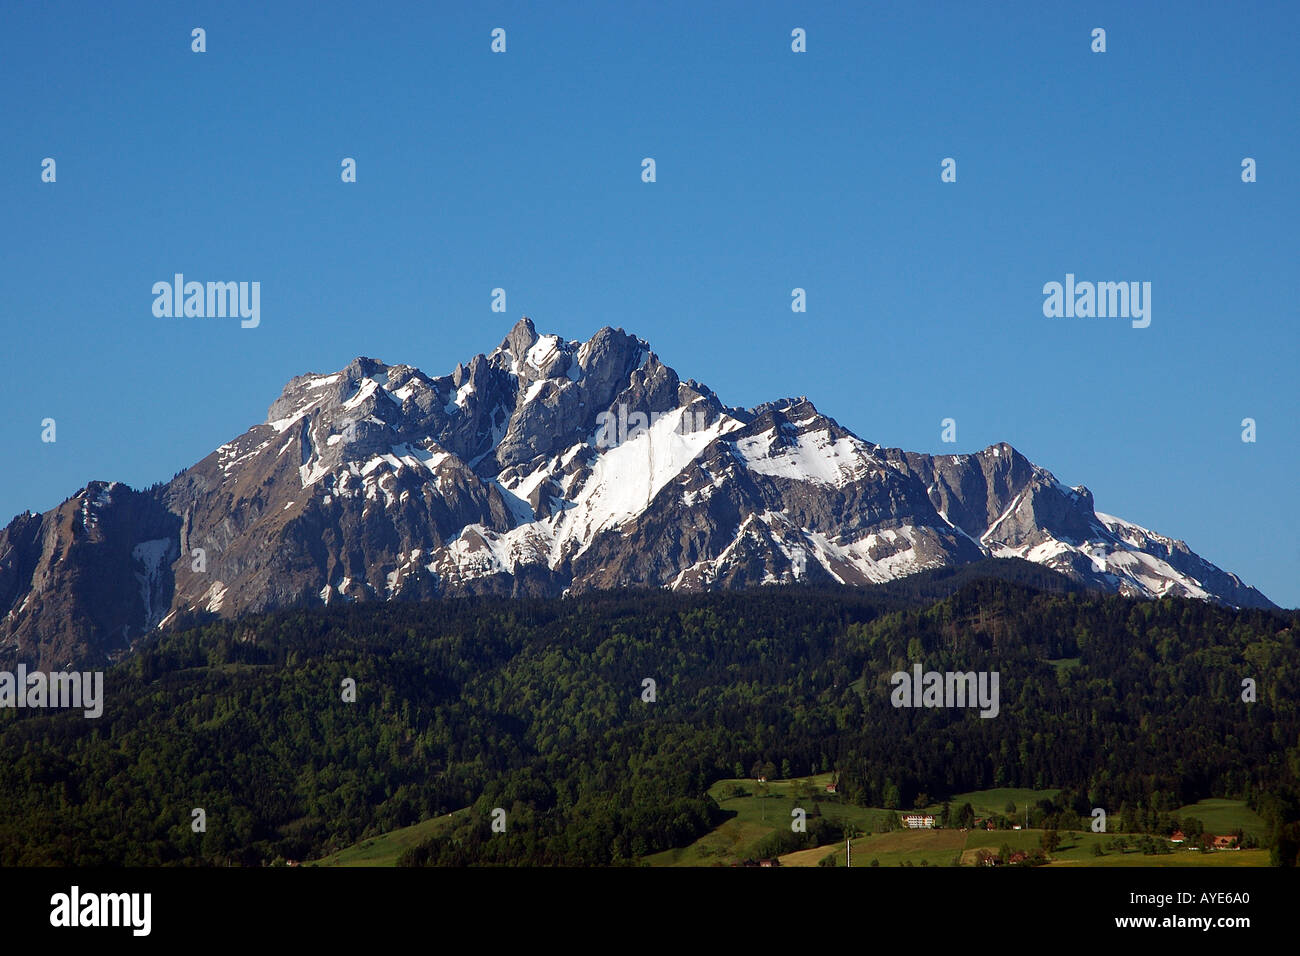 Mount Pilatus viewed from City of Lucerne - Stock Image